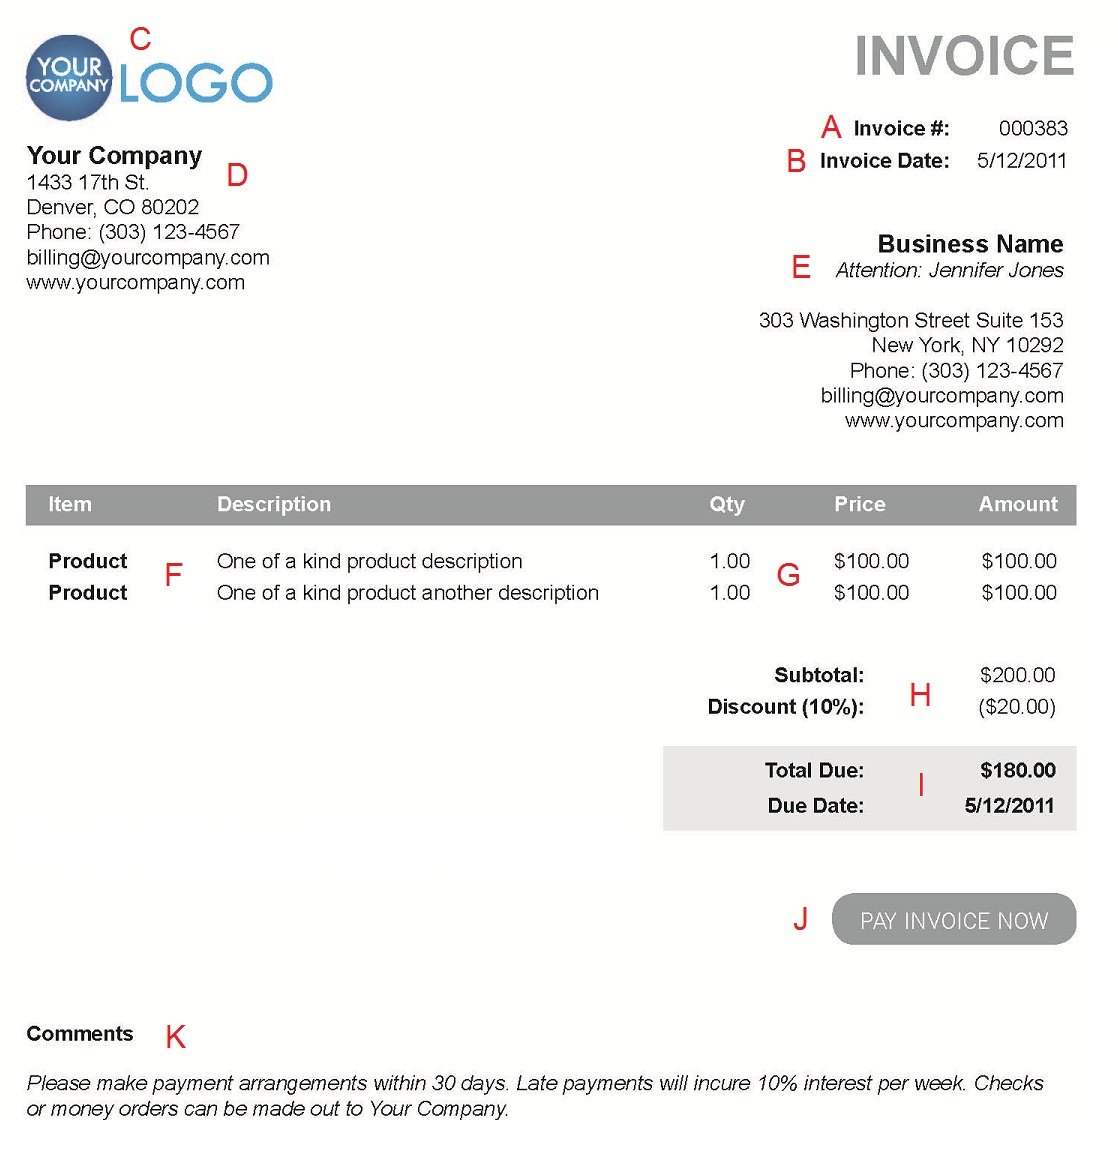 Ultrablogus  Inspiring The  Different Sections Of An Electronic Payment Invoice With Foxy A  With Cute Free Printable Blank Invoice Template Also Myob Invoices In Addition Express Invoice Free Download And Commercial Invoice Proforma Invoice As Well As Sage Invoice Templates Additionally Hmrc Vat Invoice From Paysimplecom With Ultrablogus  Foxy The  Different Sections Of An Electronic Payment Invoice With Cute A  And Inspiring Free Printable Blank Invoice Template Also Myob Invoices In Addition Express Invoice Free Download From Paysimplecom